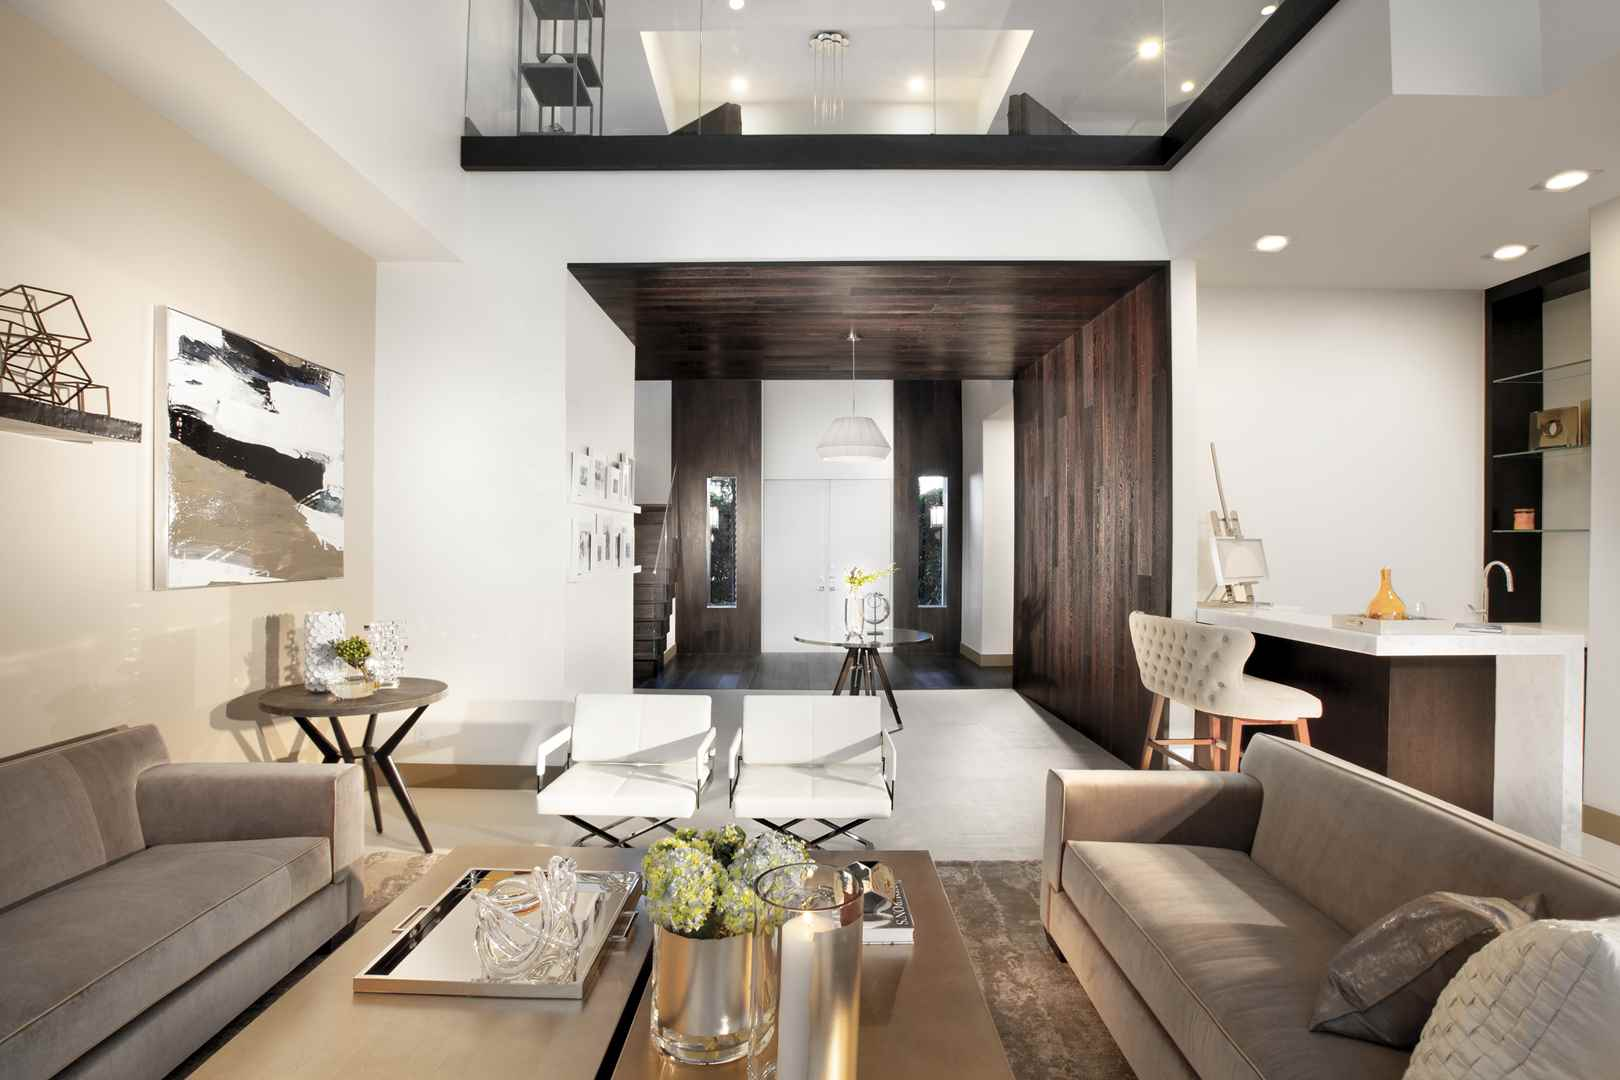 Home Renovation Contemporary Comfort By Dkor Interiors